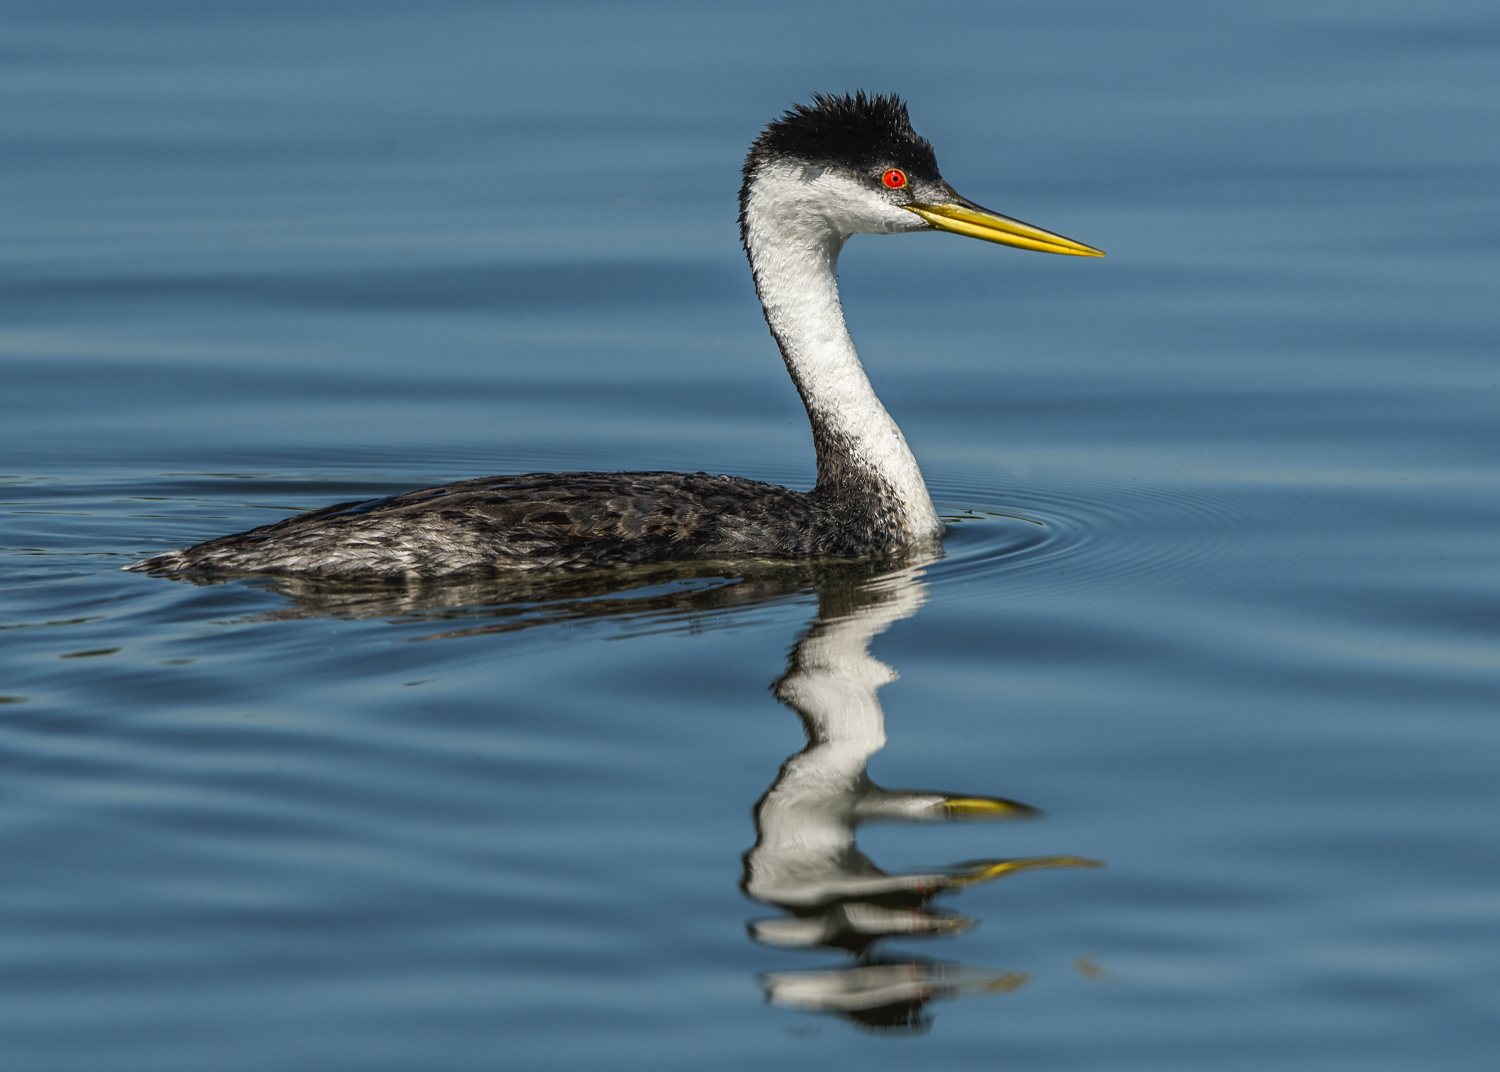 Western Grebe, Barr Lake State Park (CO), June 2016